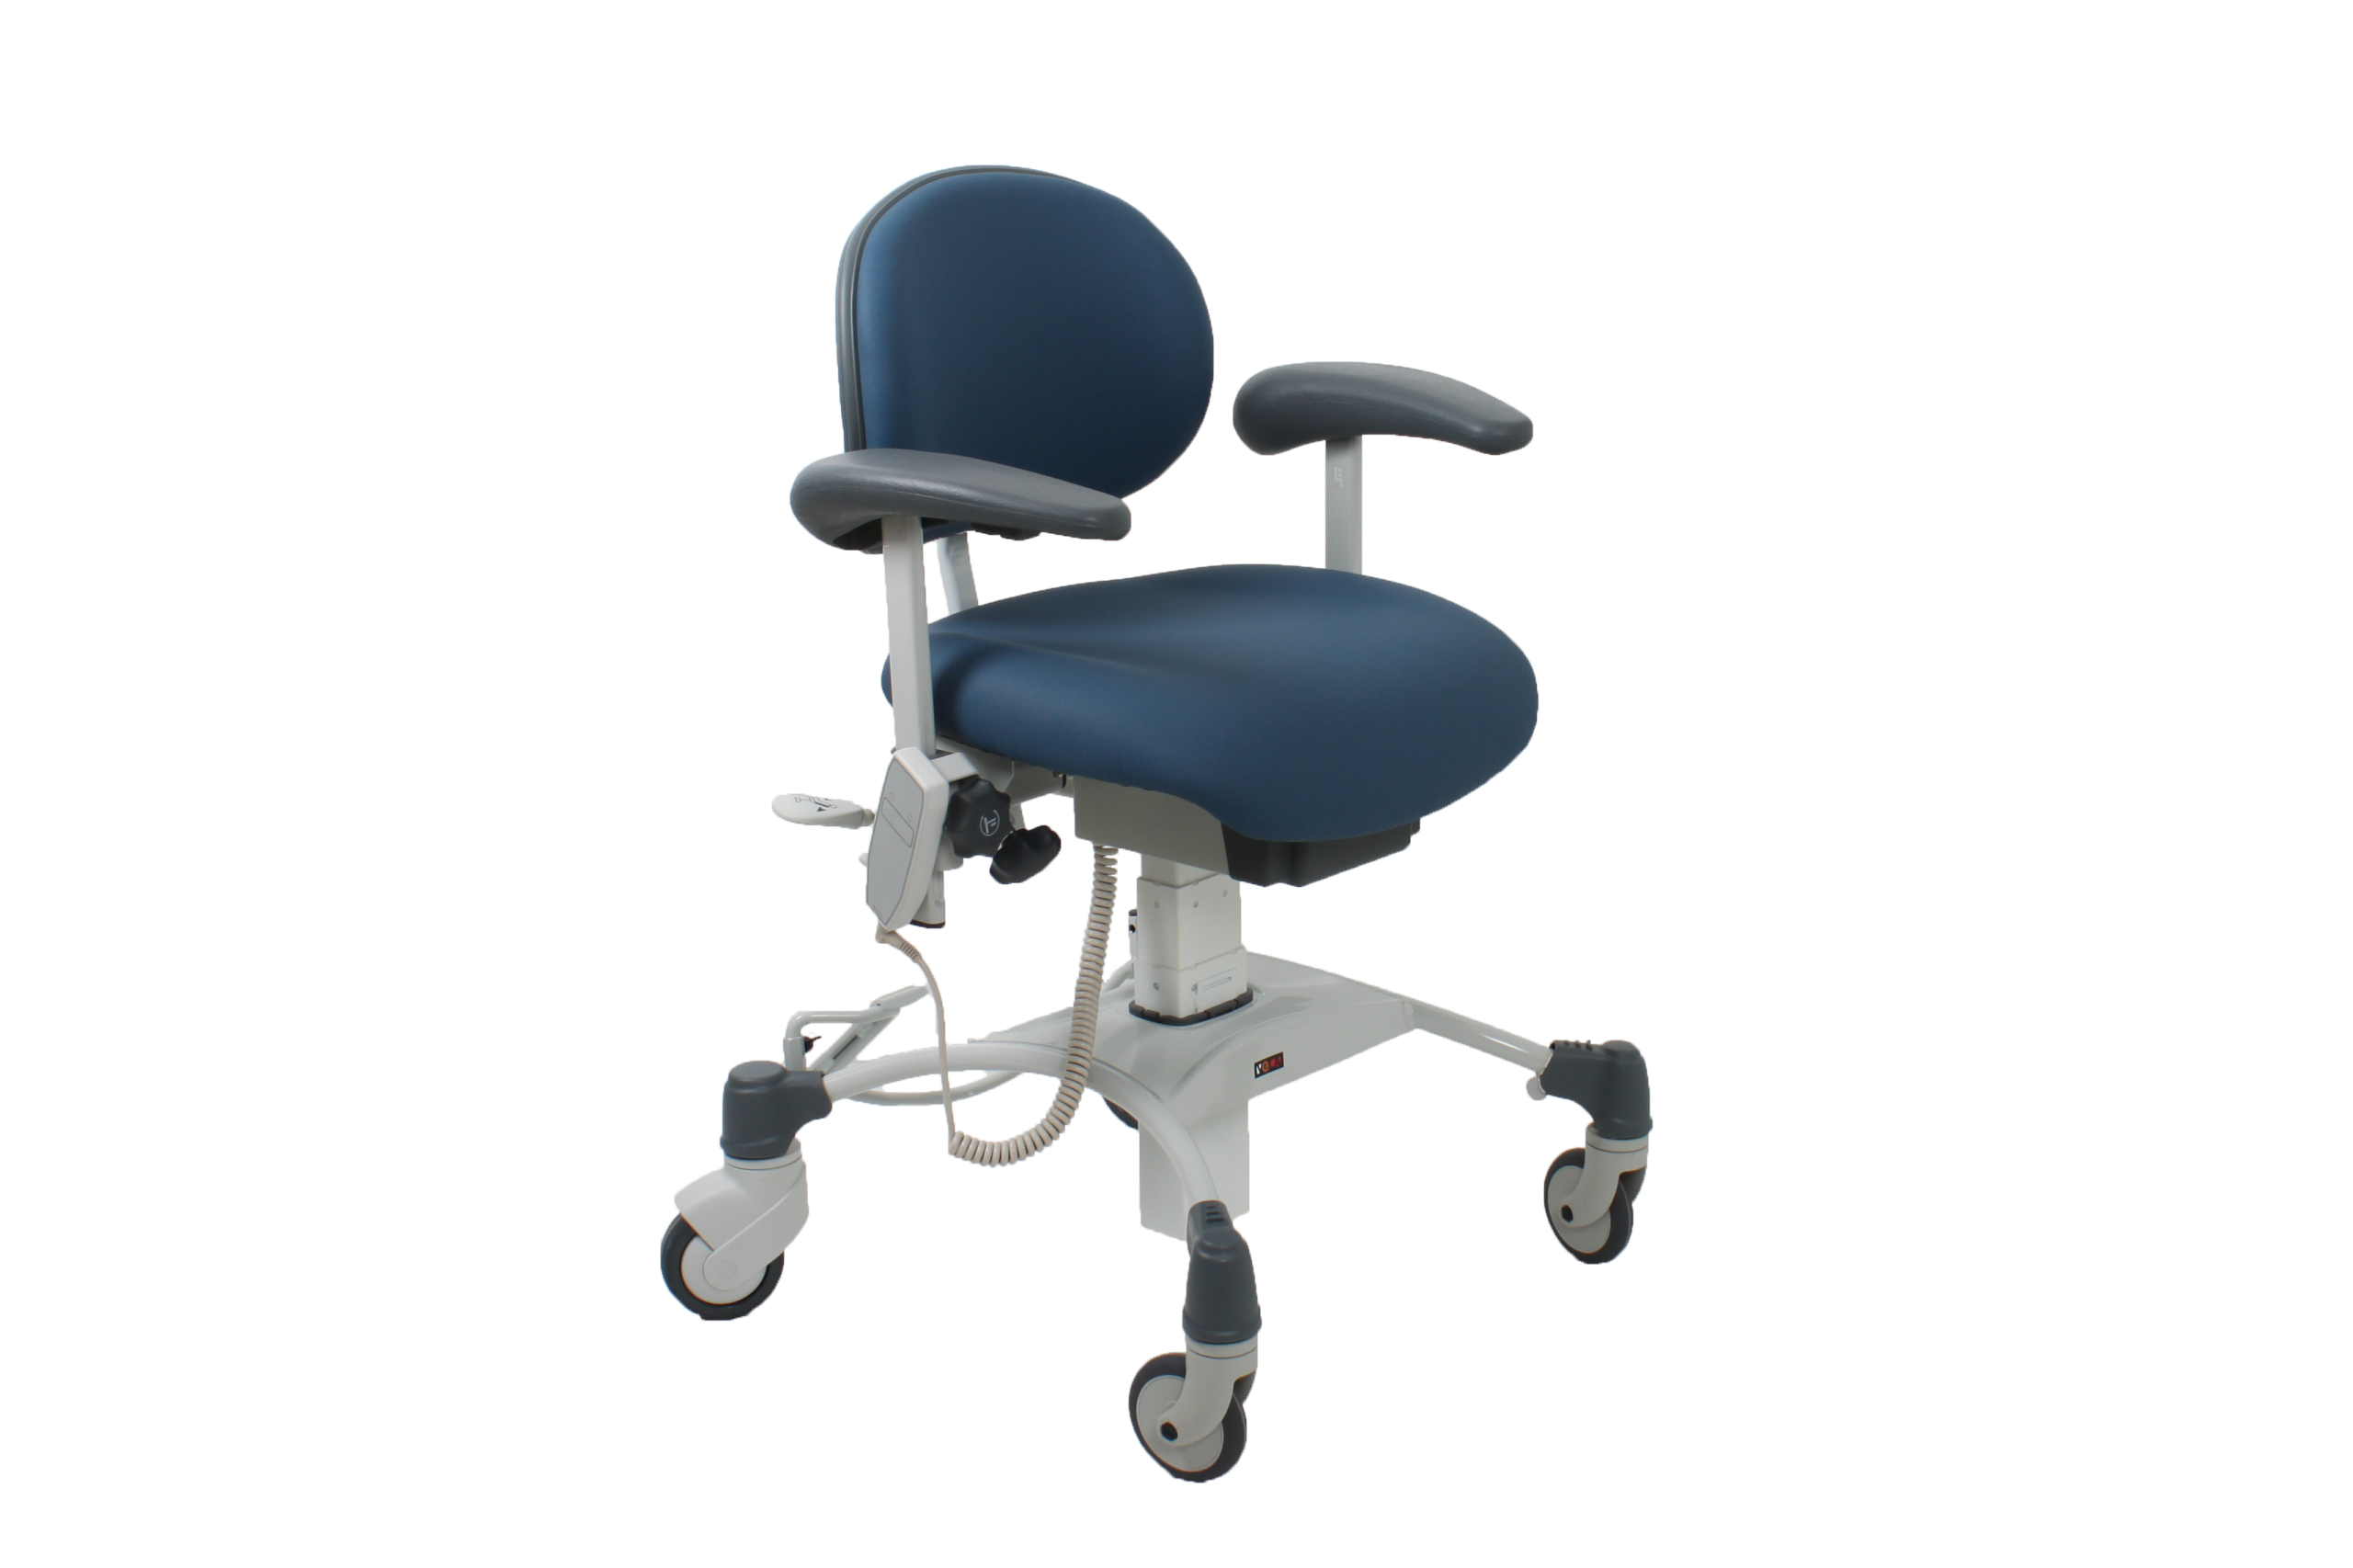 https://www.lameris-group.nl/wp-content/uploads/2020/03/VELA-Basic-Ophtalmology-chair-right-scaled.png